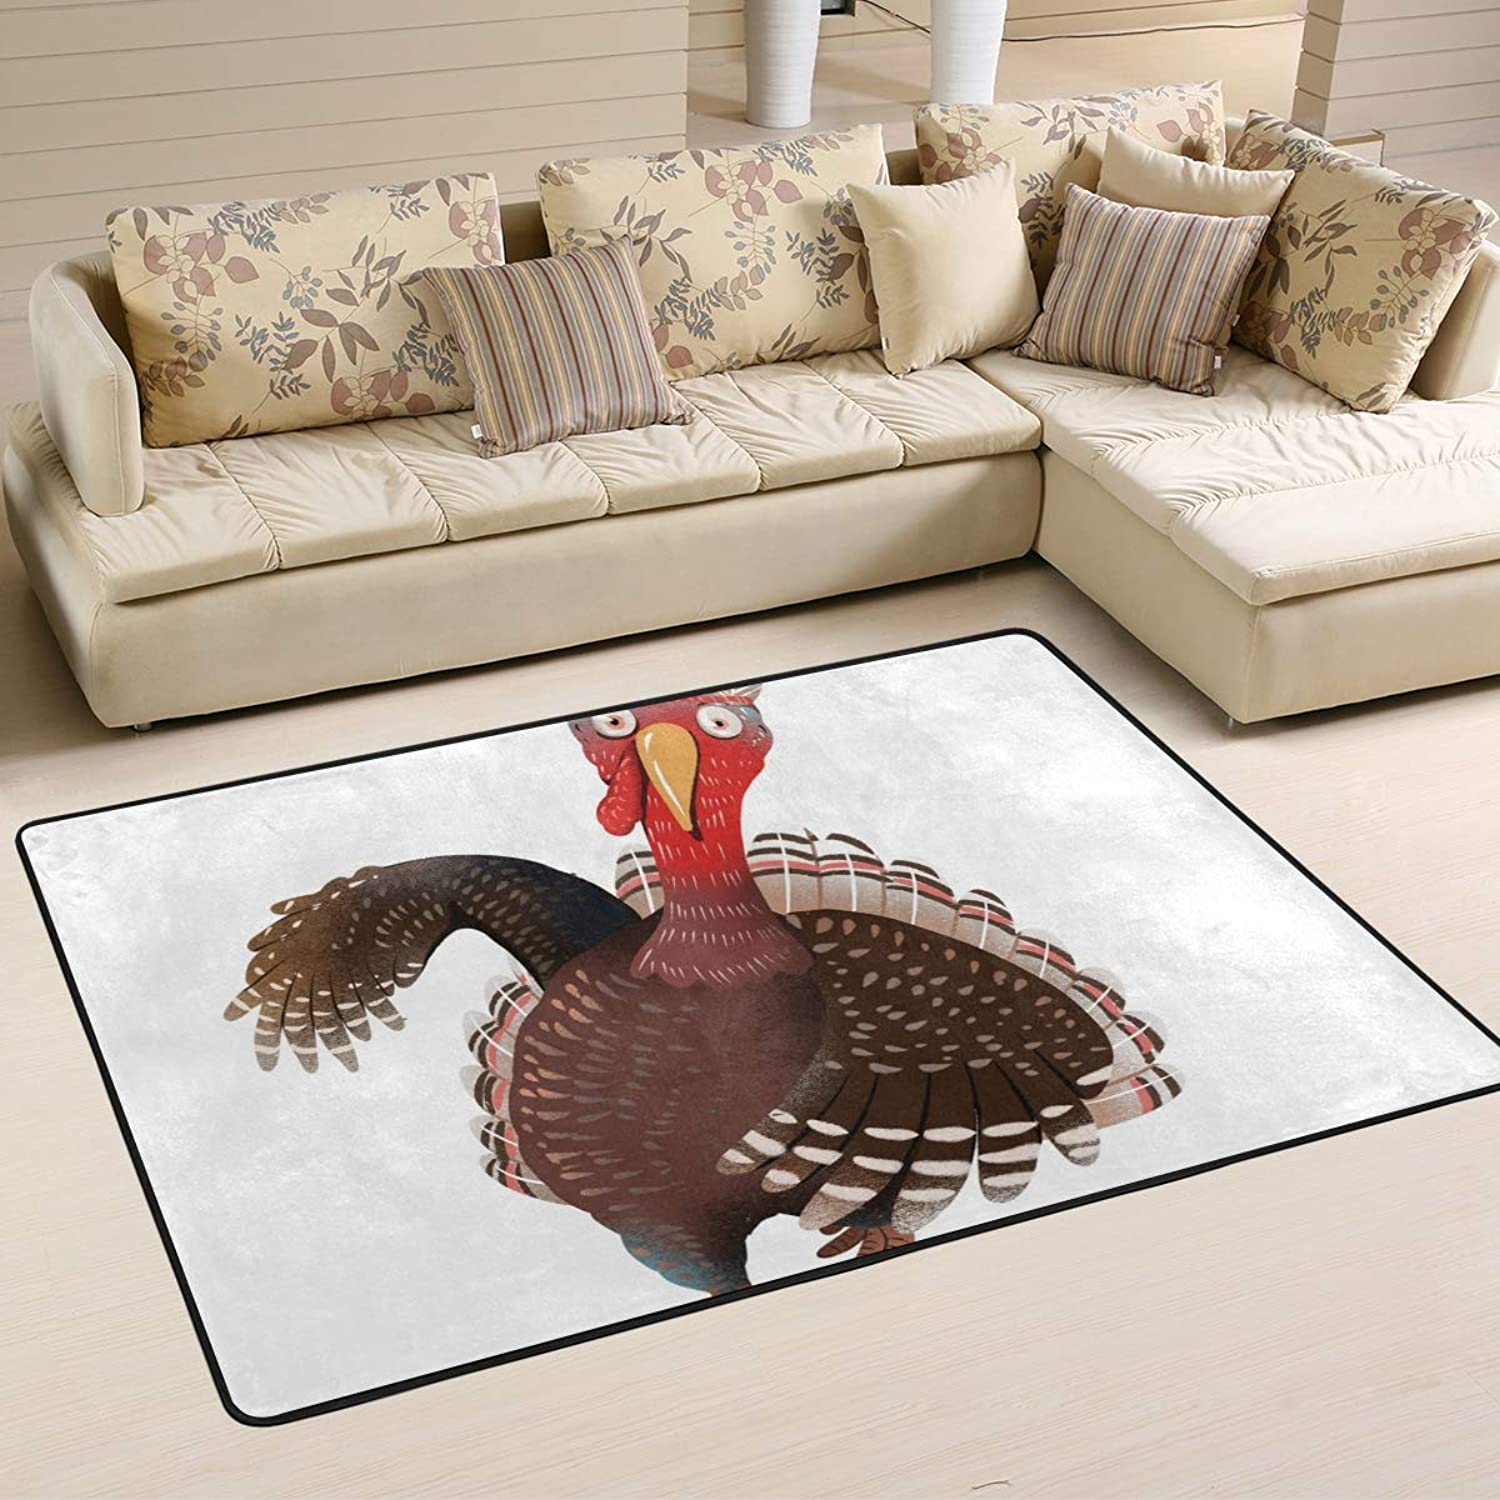 FAJRO Thanksgiving Turkey mud shoes Scraper Area Rug Entry Way Doormat Multipattern Floor Mats Home Dec Anti-Slip Indoor Outdoor